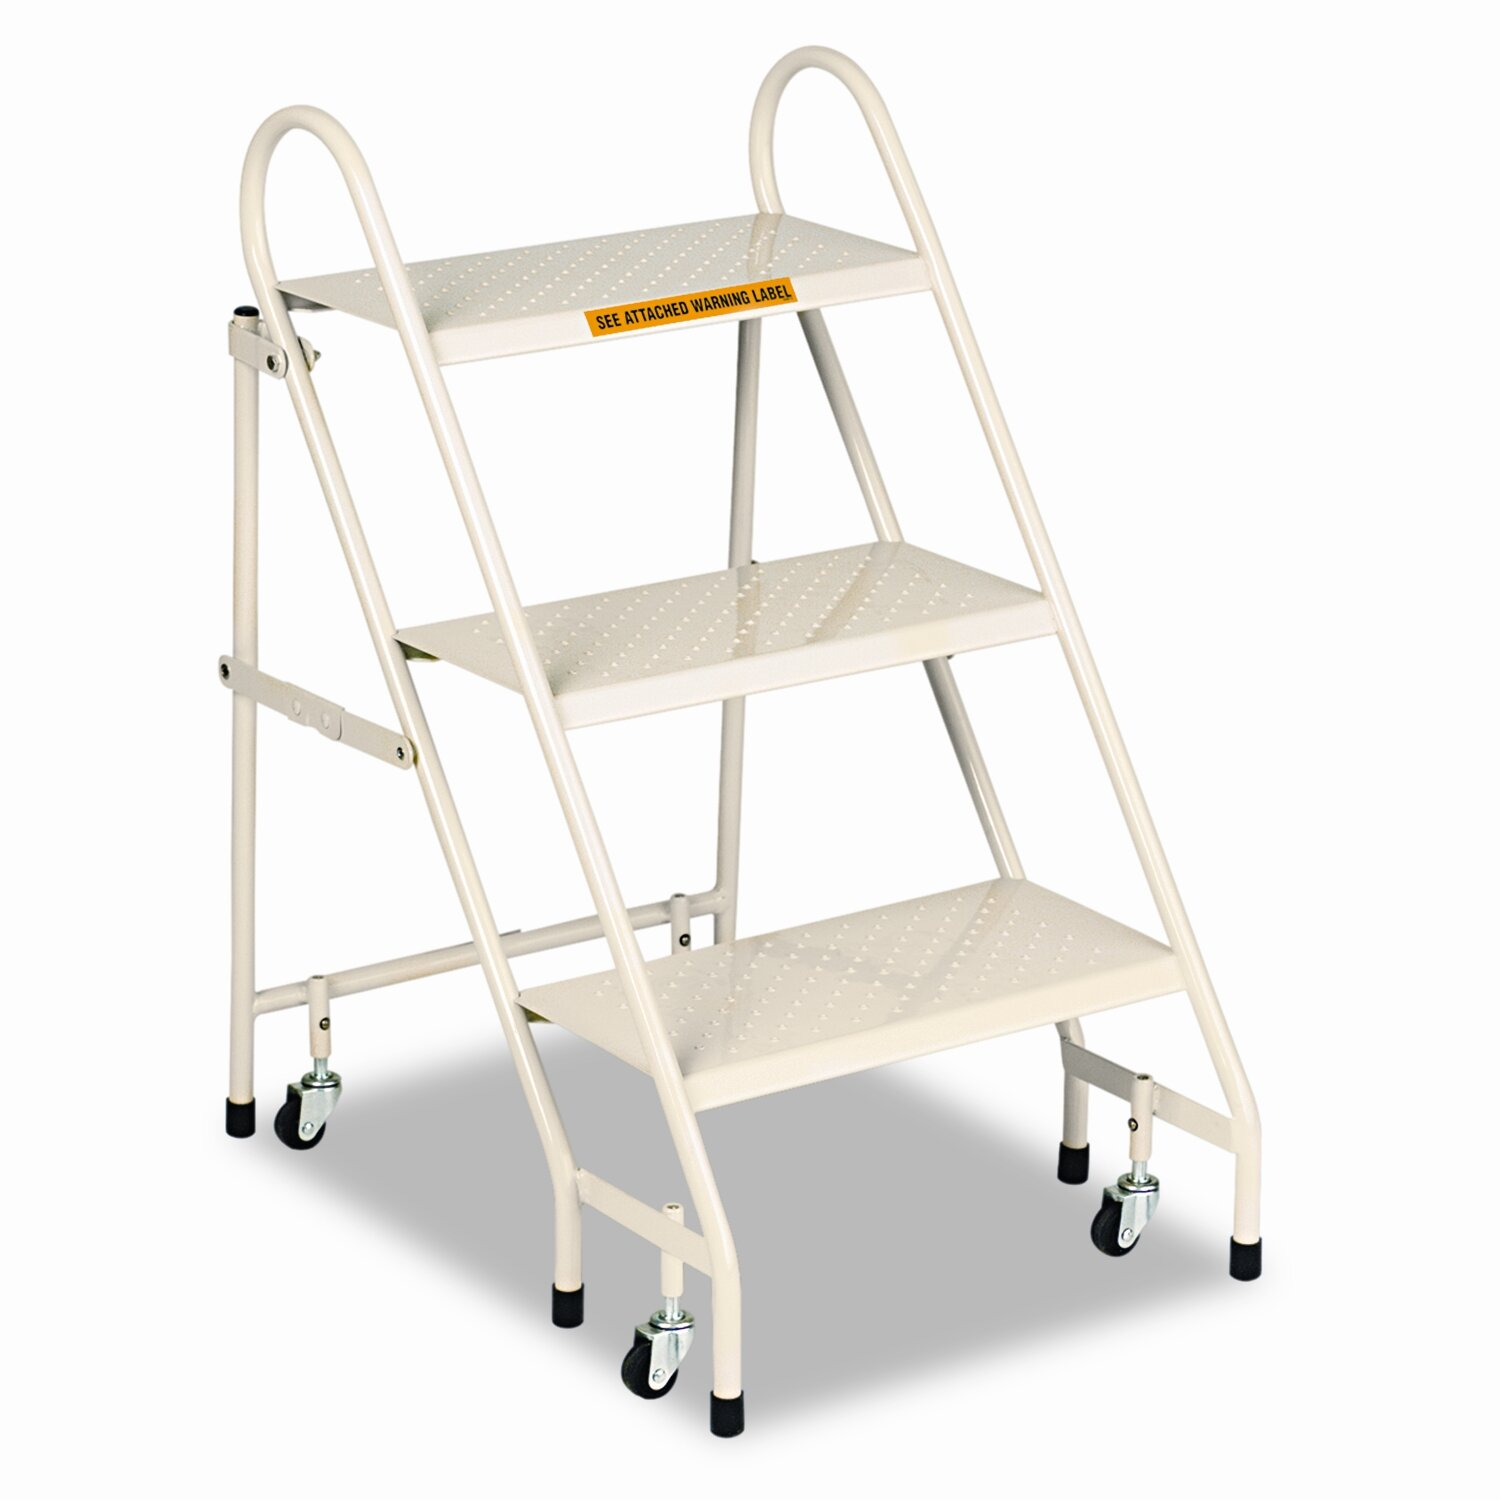 Cramer Industries Inc 3 Step Steel Folding Step Stool